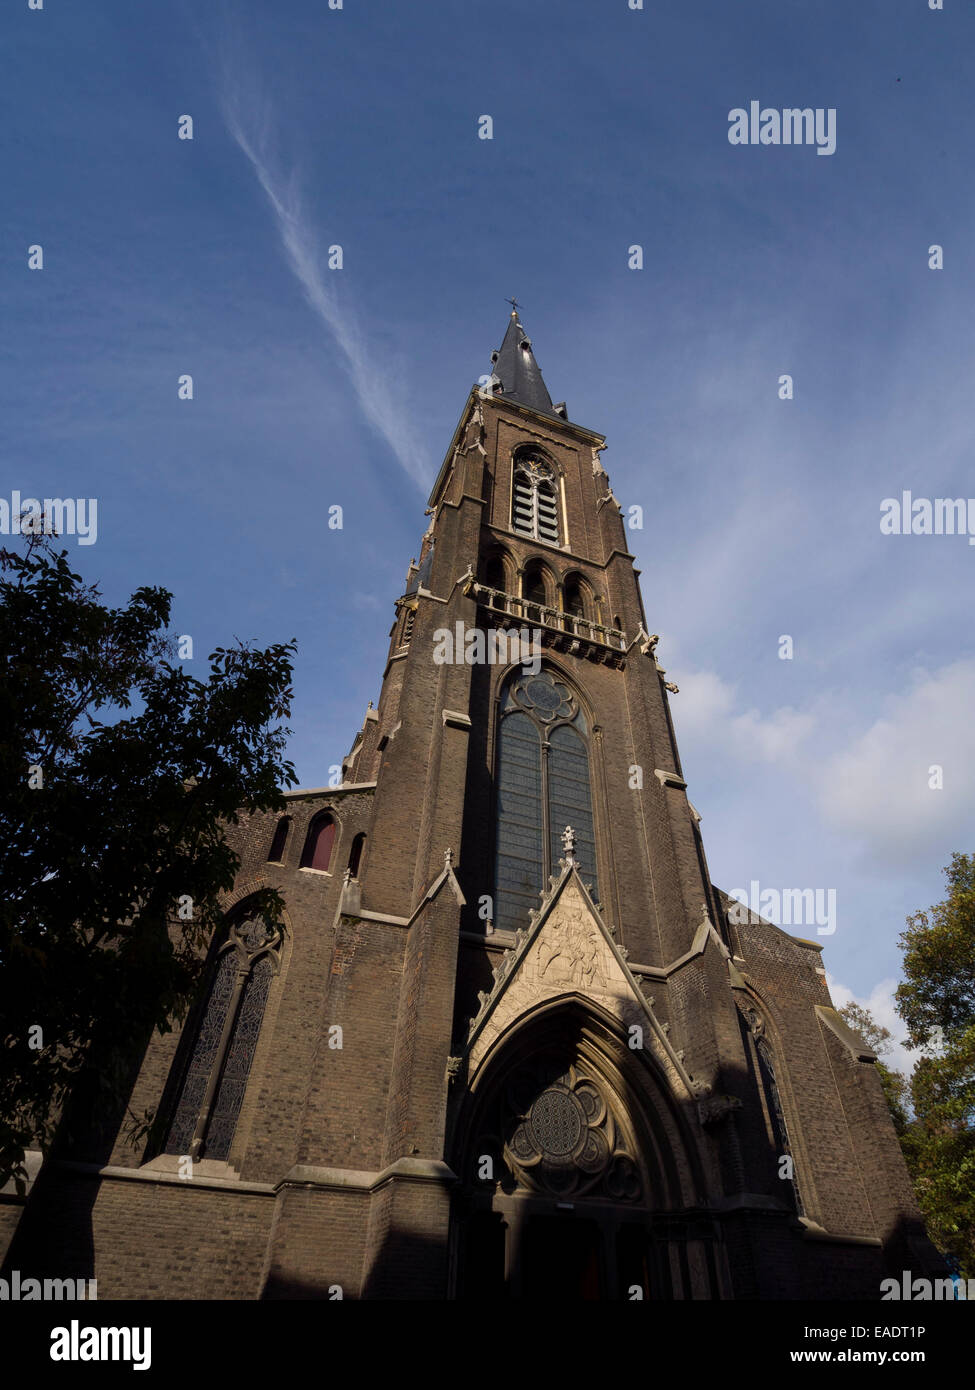 St. Martinus neo-gothic church in Maastricht, The Netherlands, Europe - Stock Image